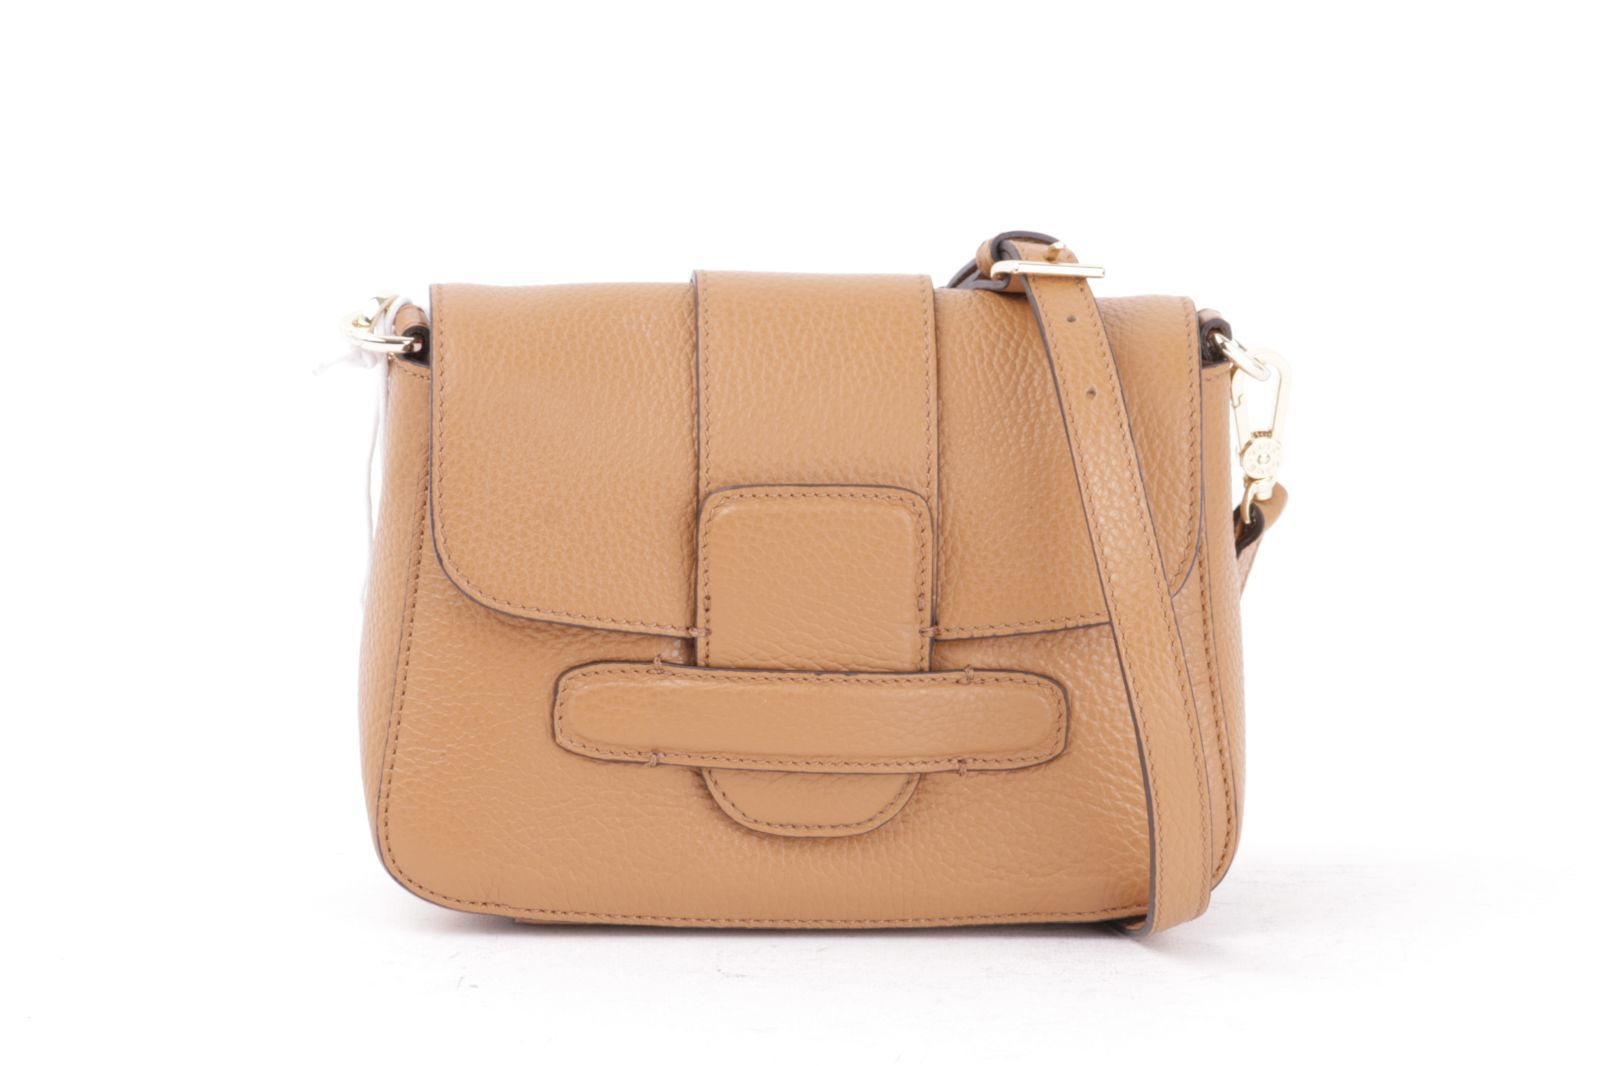 Abro Handtas Cognac dames (028916-37 Cross body bag - 028916-37 Cross body bag) - Rigi